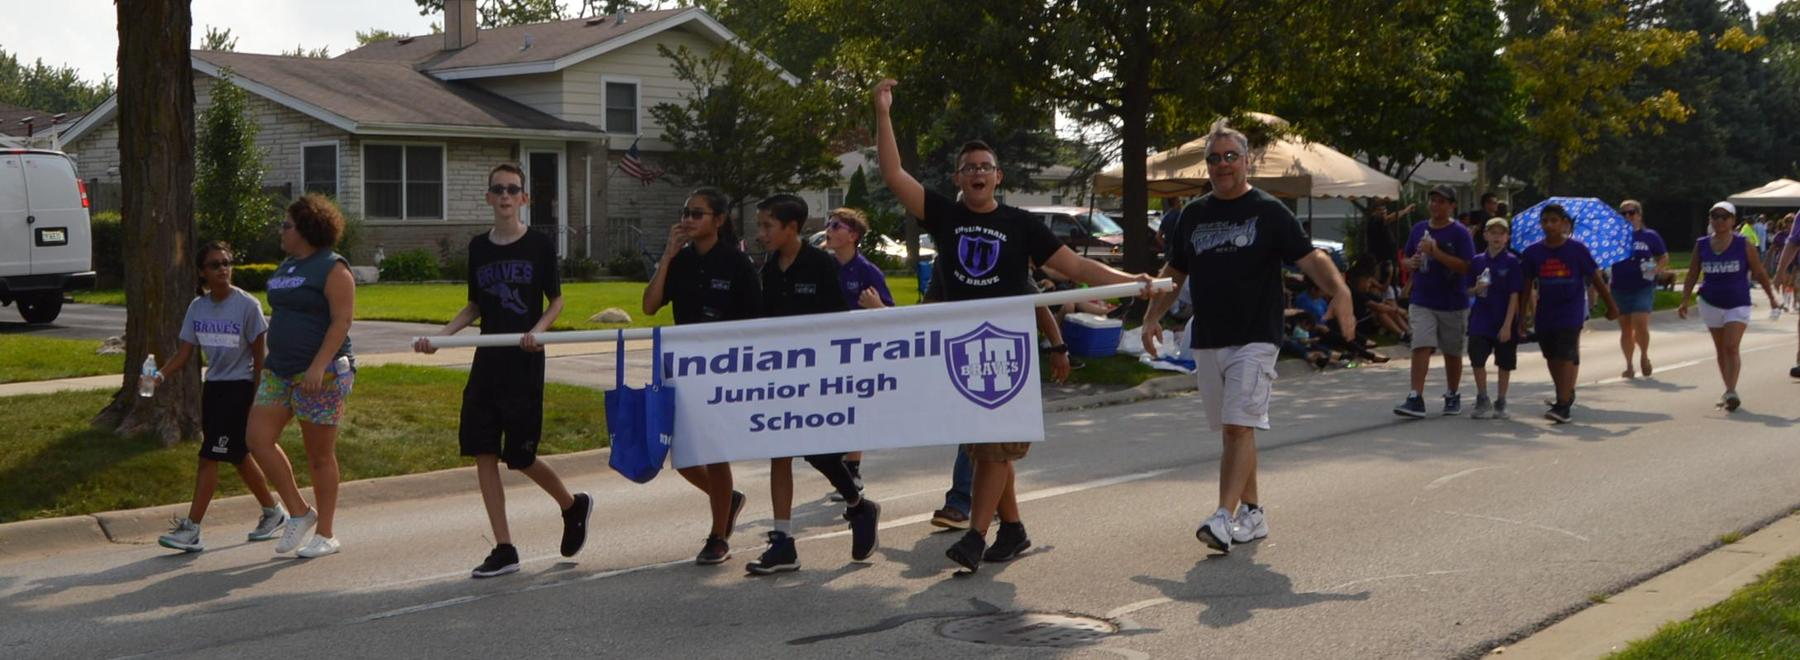 Indian Trail in parade